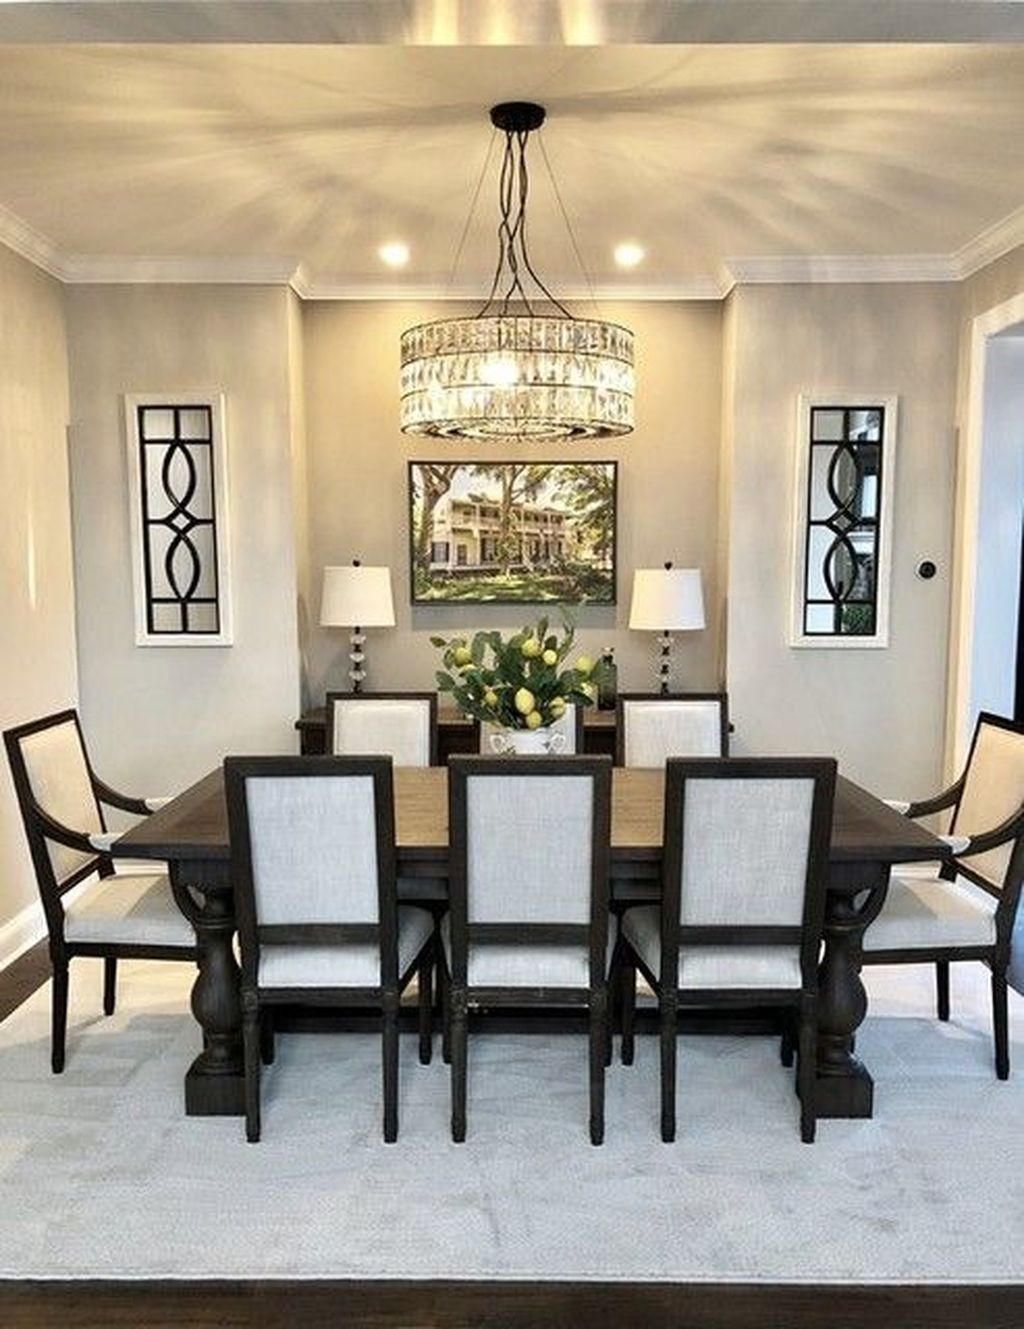 Admirable Dining Room Design Ideas You Will Love 25